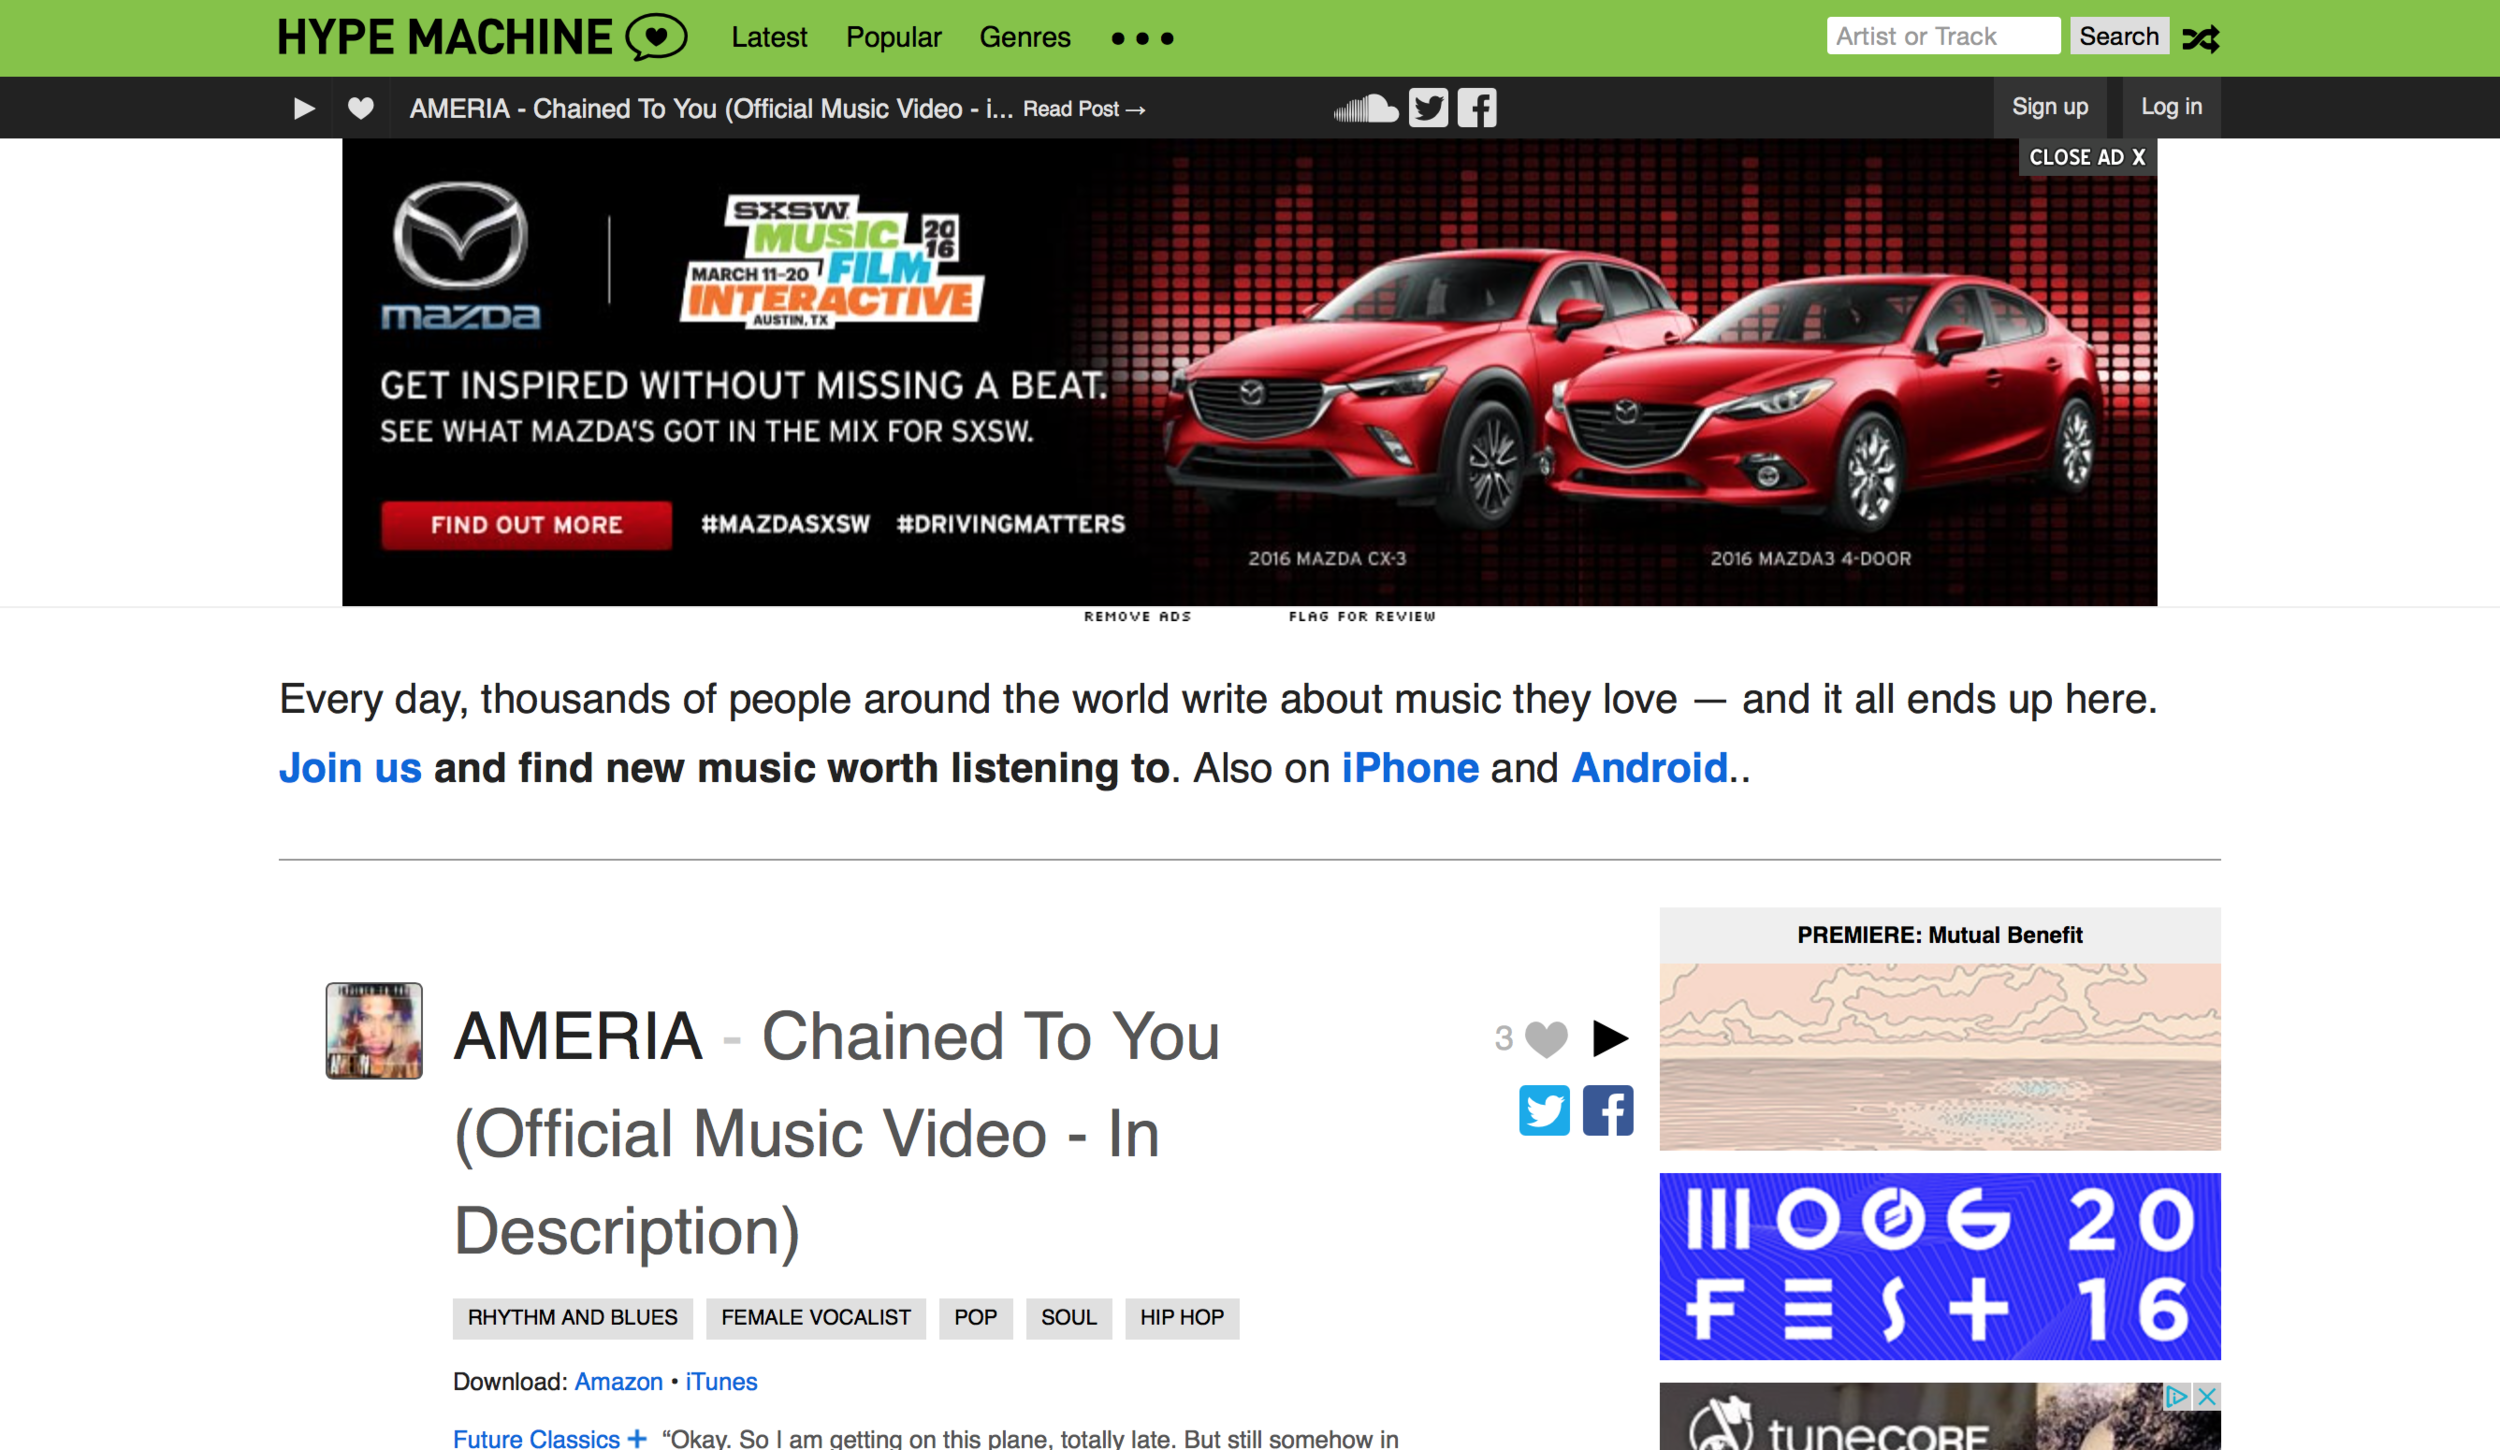 """Chained to you"" on HYPEM"